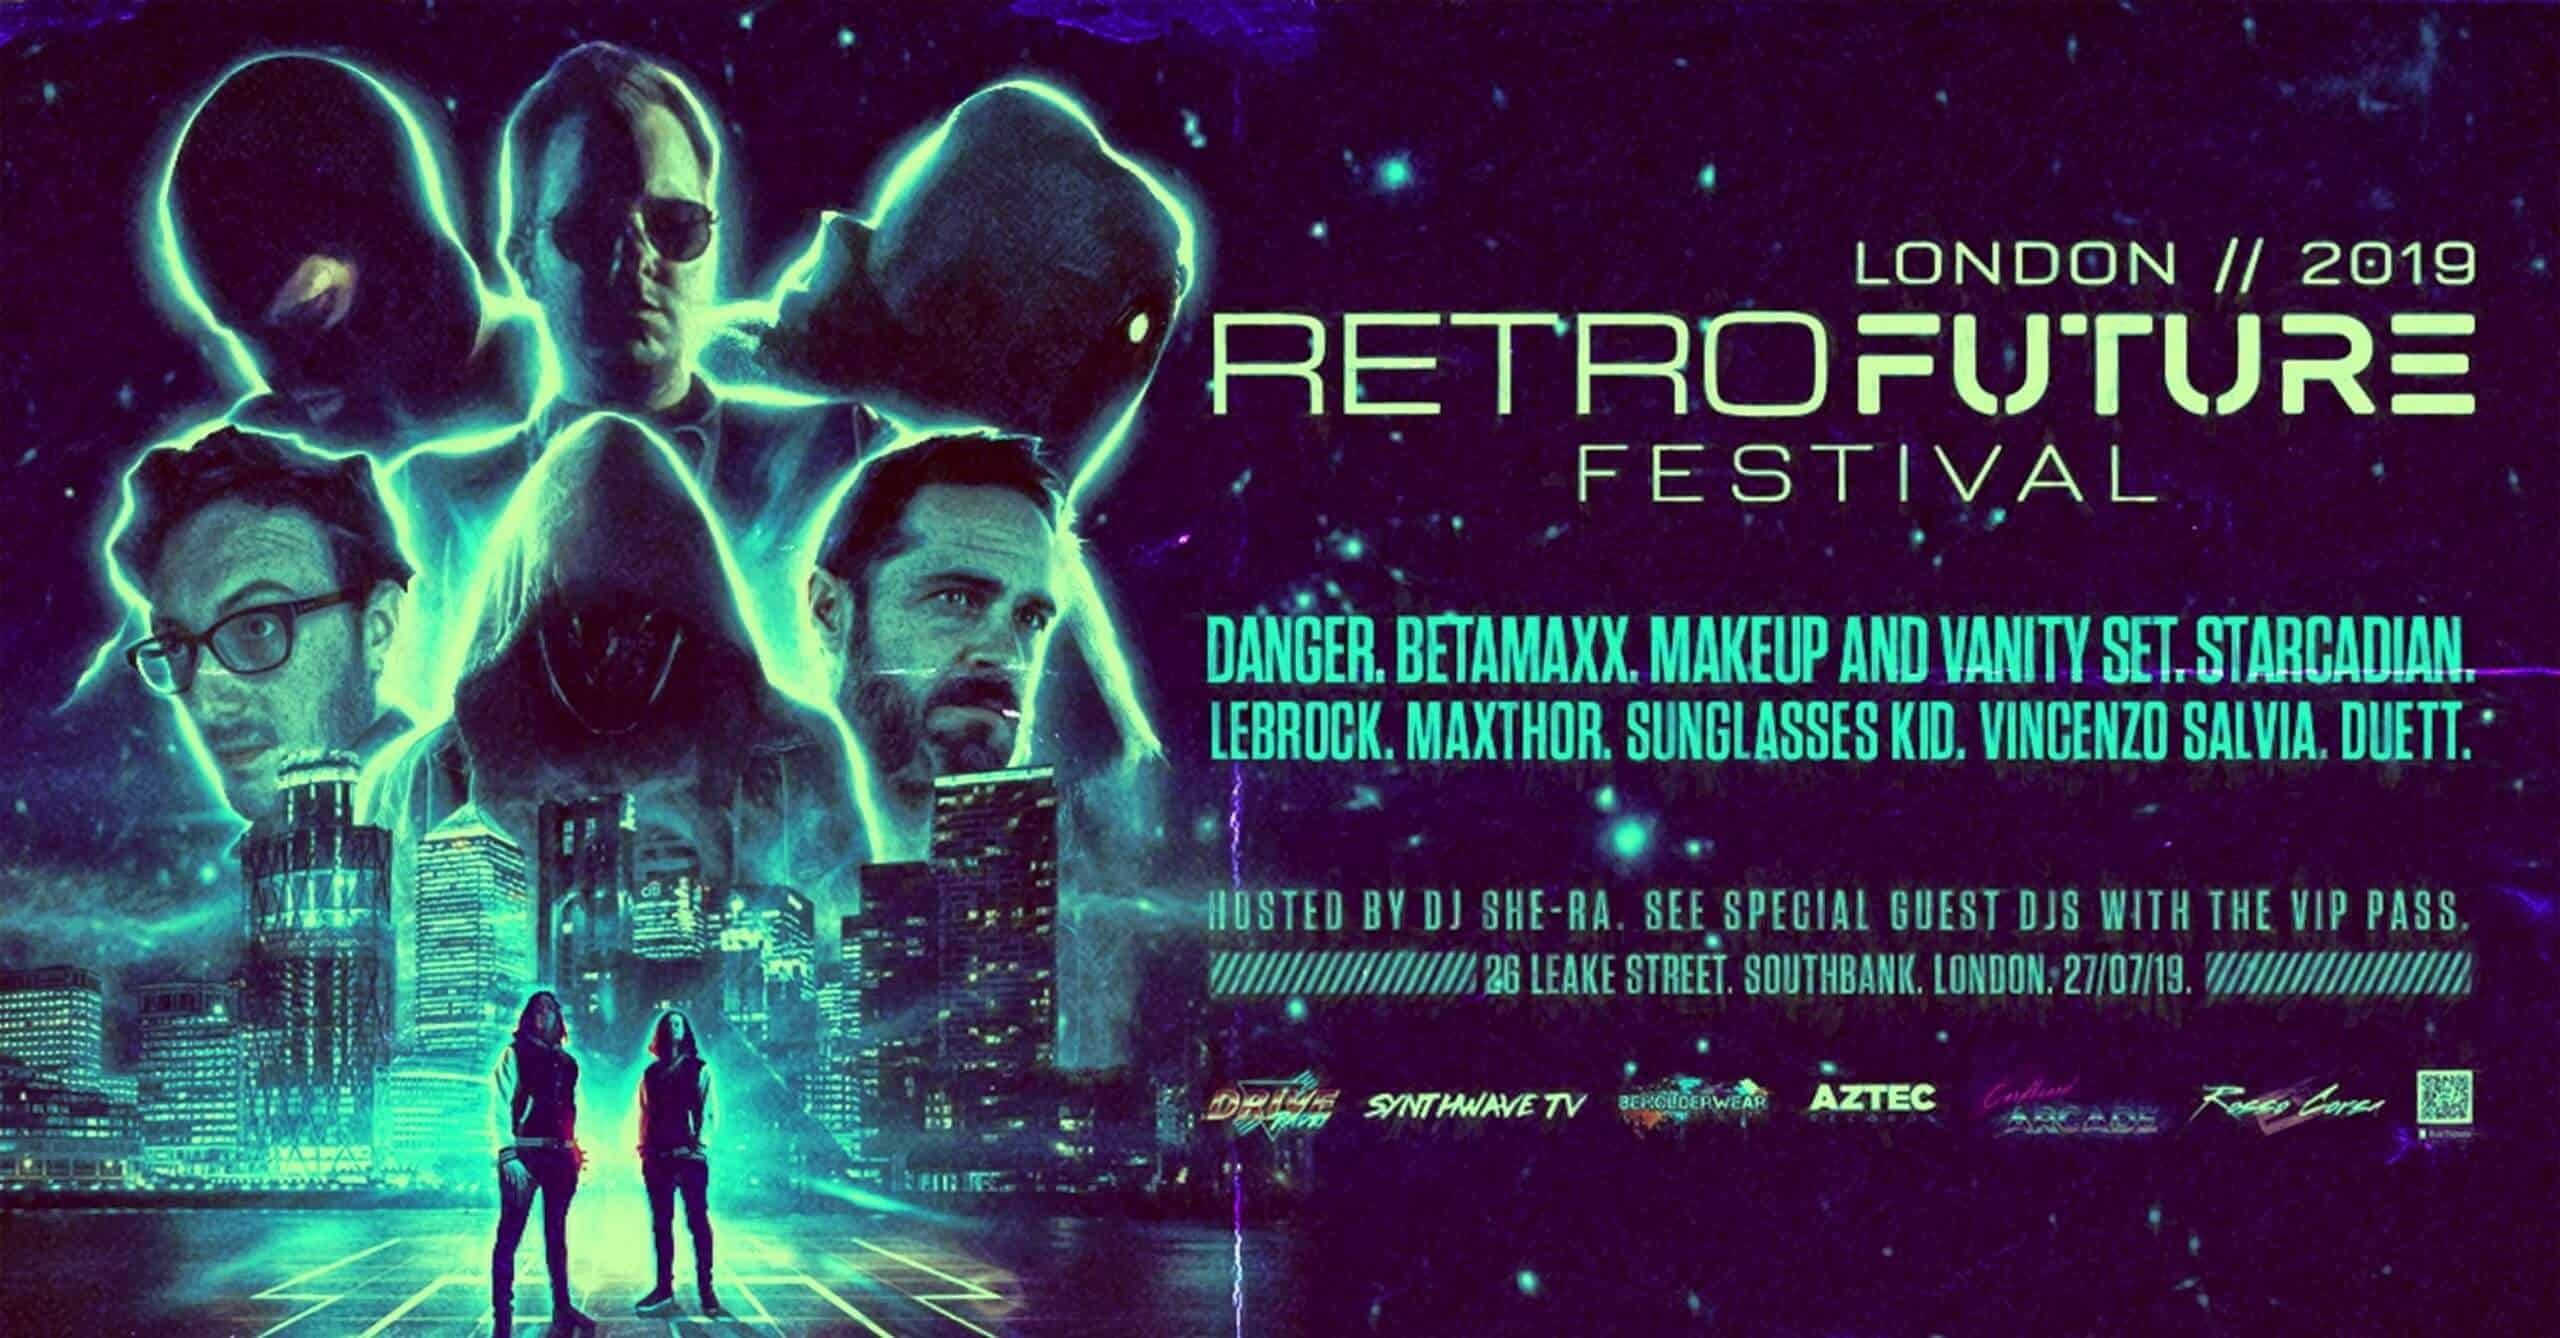 Retro Future Festival 2019 1 - Retro Future Festival 2019 Will Be The UK's Biggest Synthwave Event